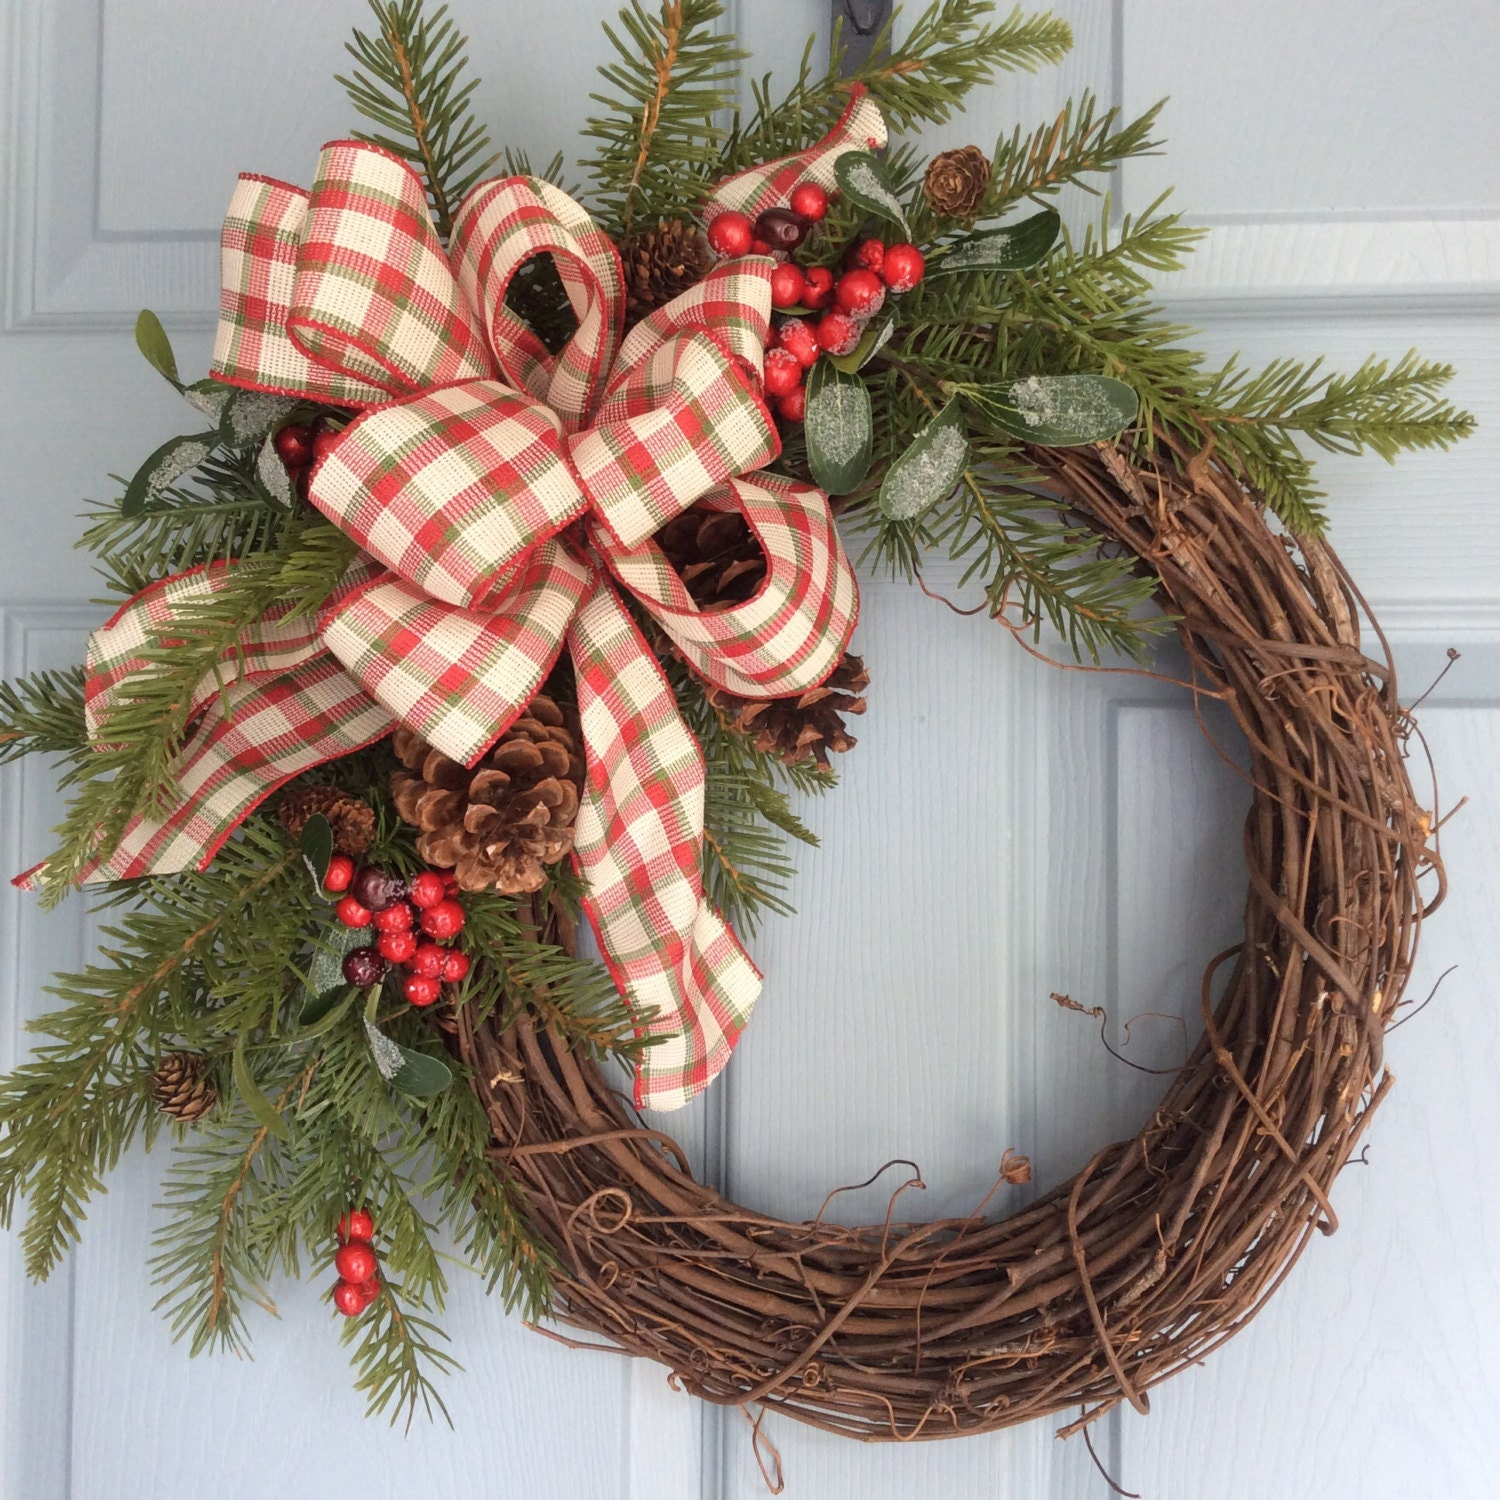 Christmas Wreath Rustic Wreath Holiday Wreath Winter